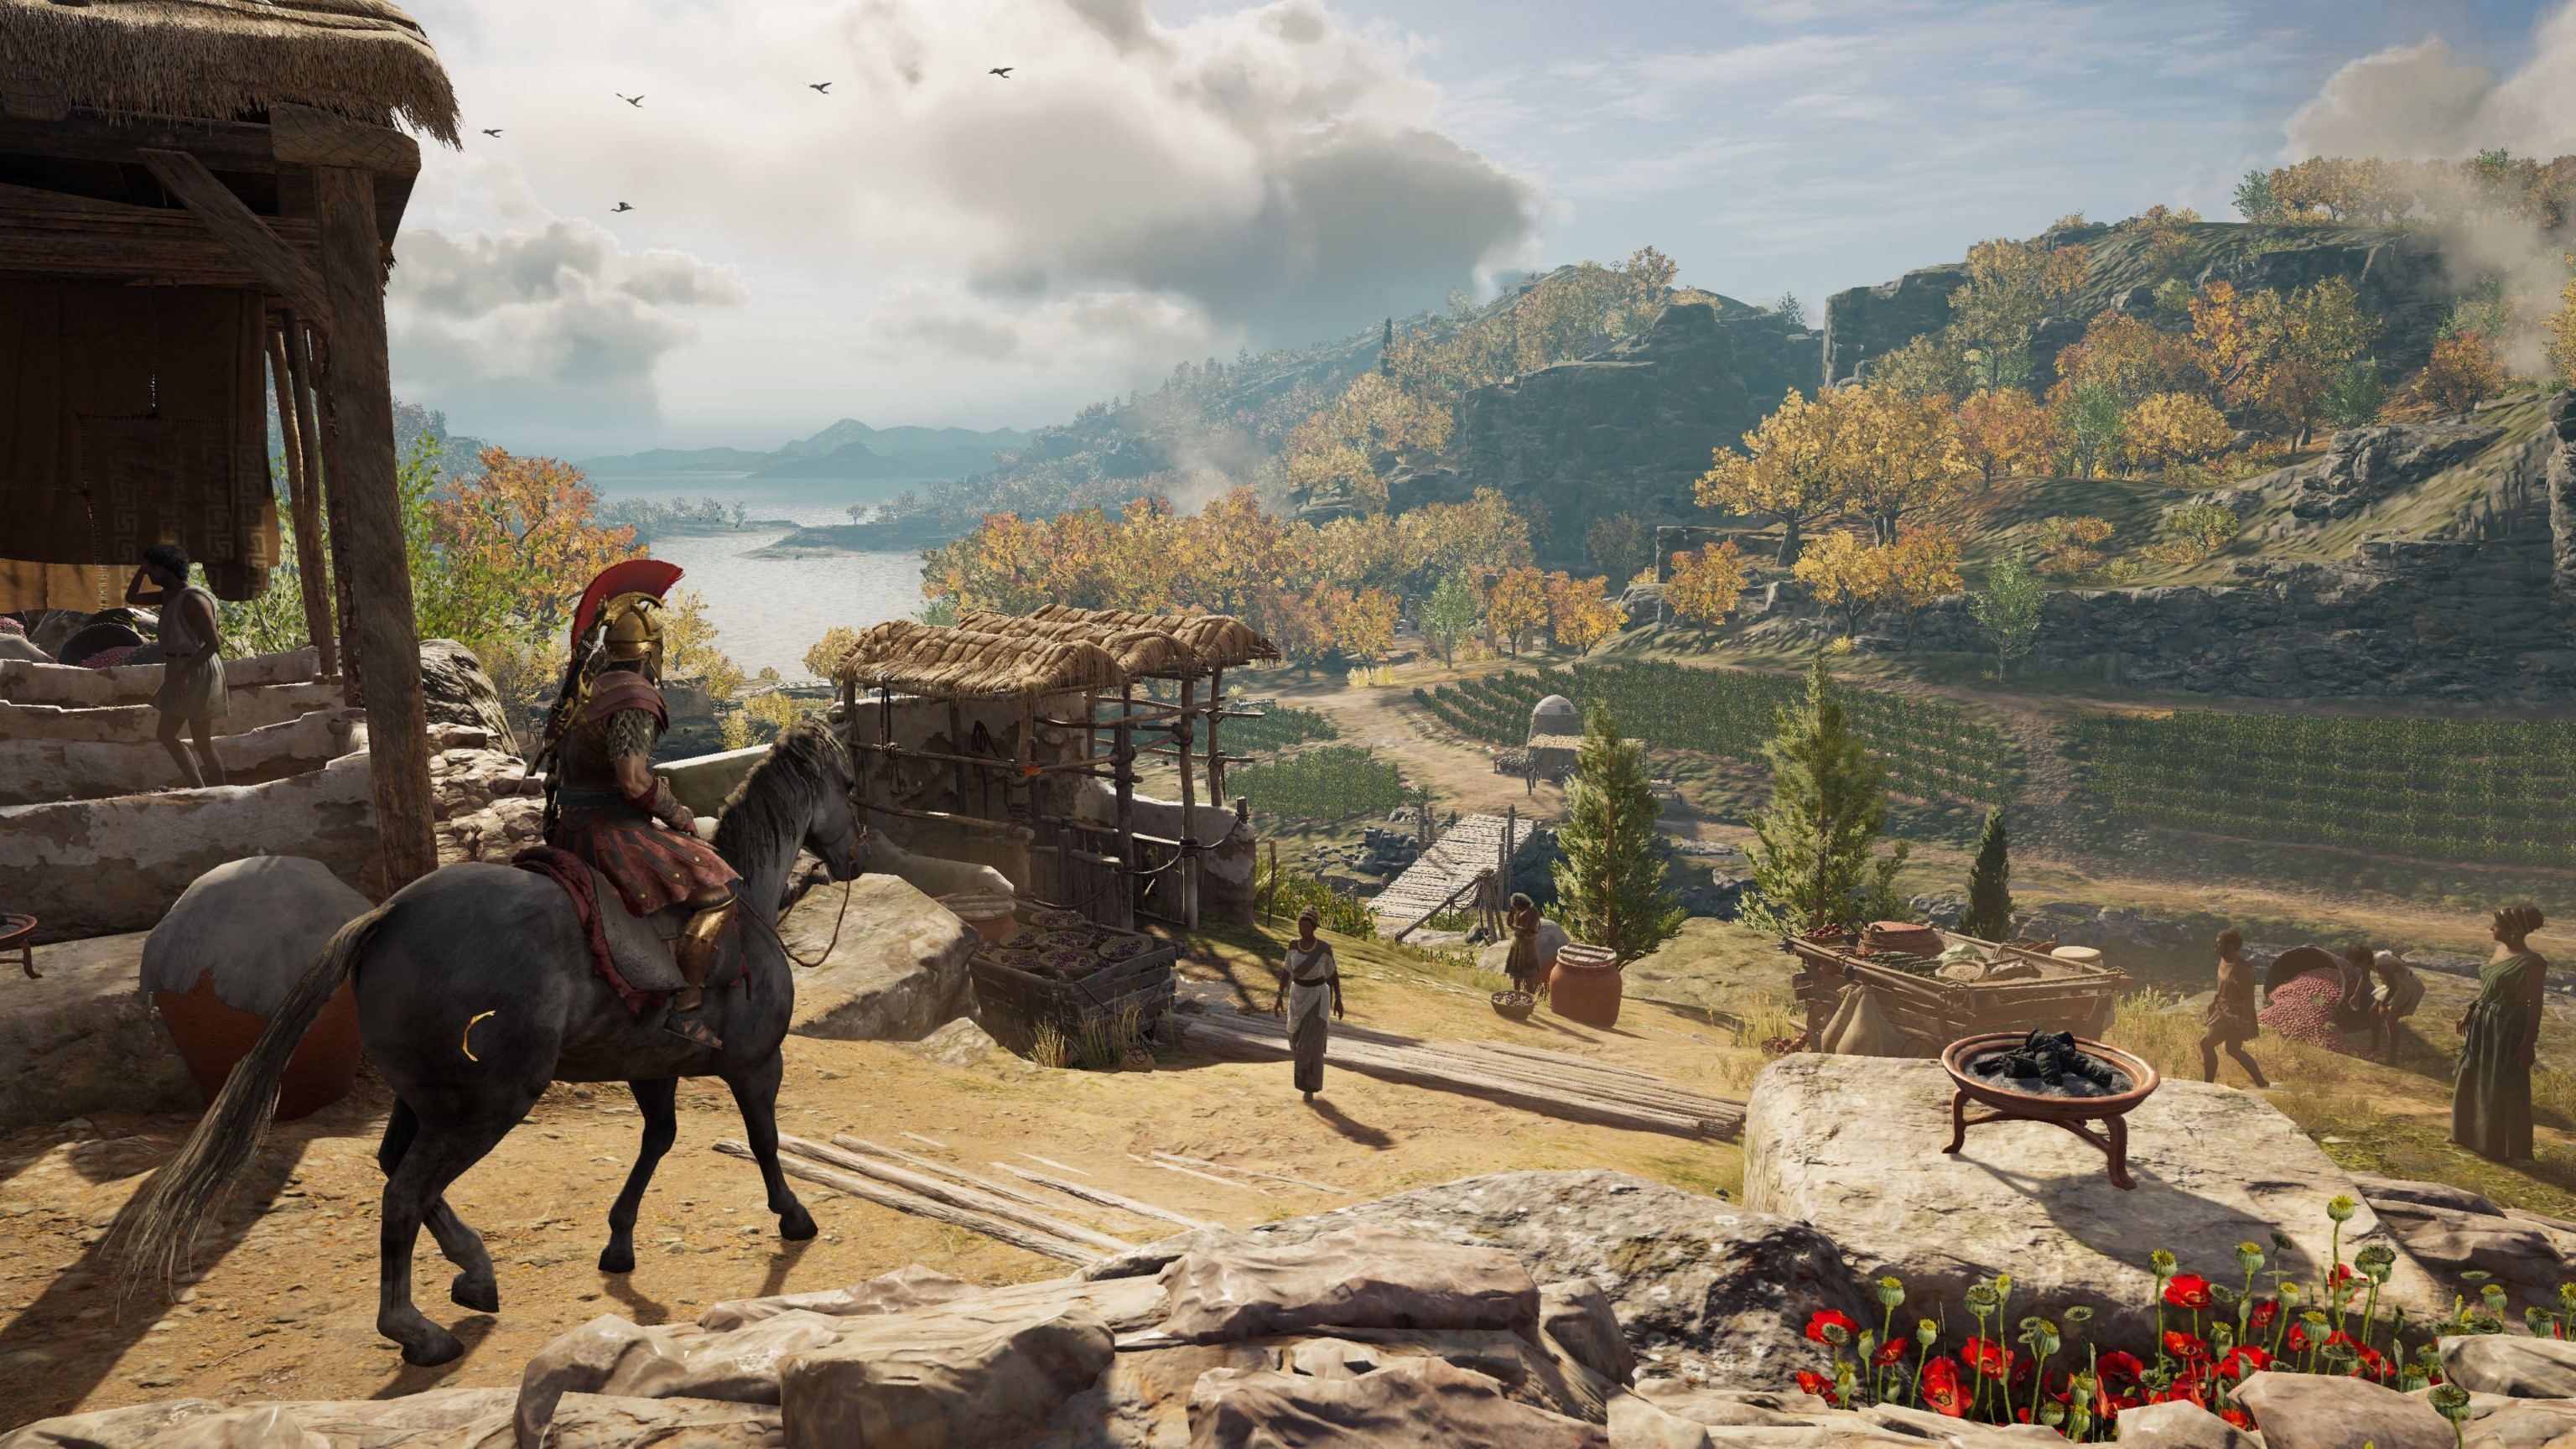 Assassin's Creed Odyssey LesbosIsland